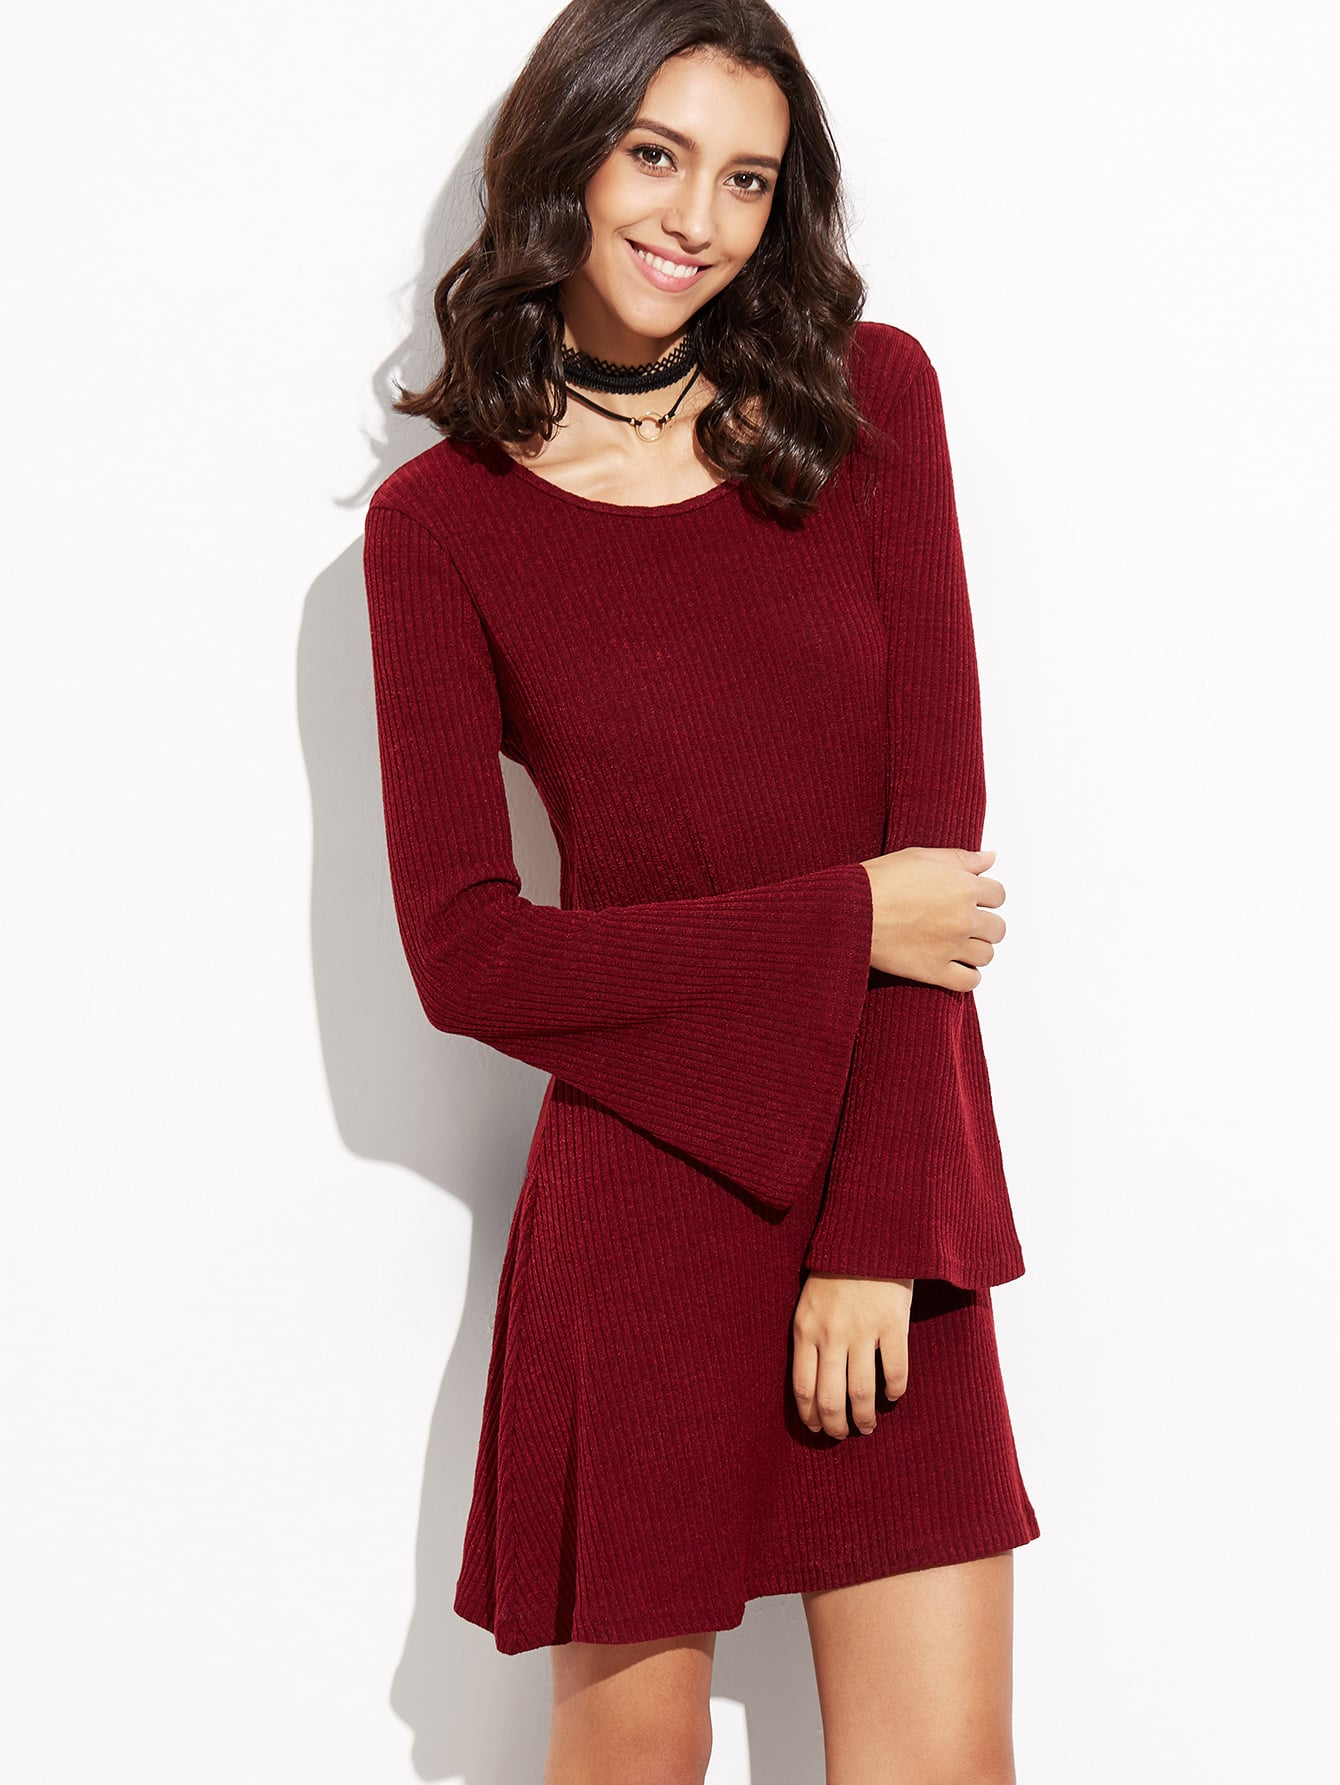 Burgundy Bell Sleeve Ribbed Dress dress160826402